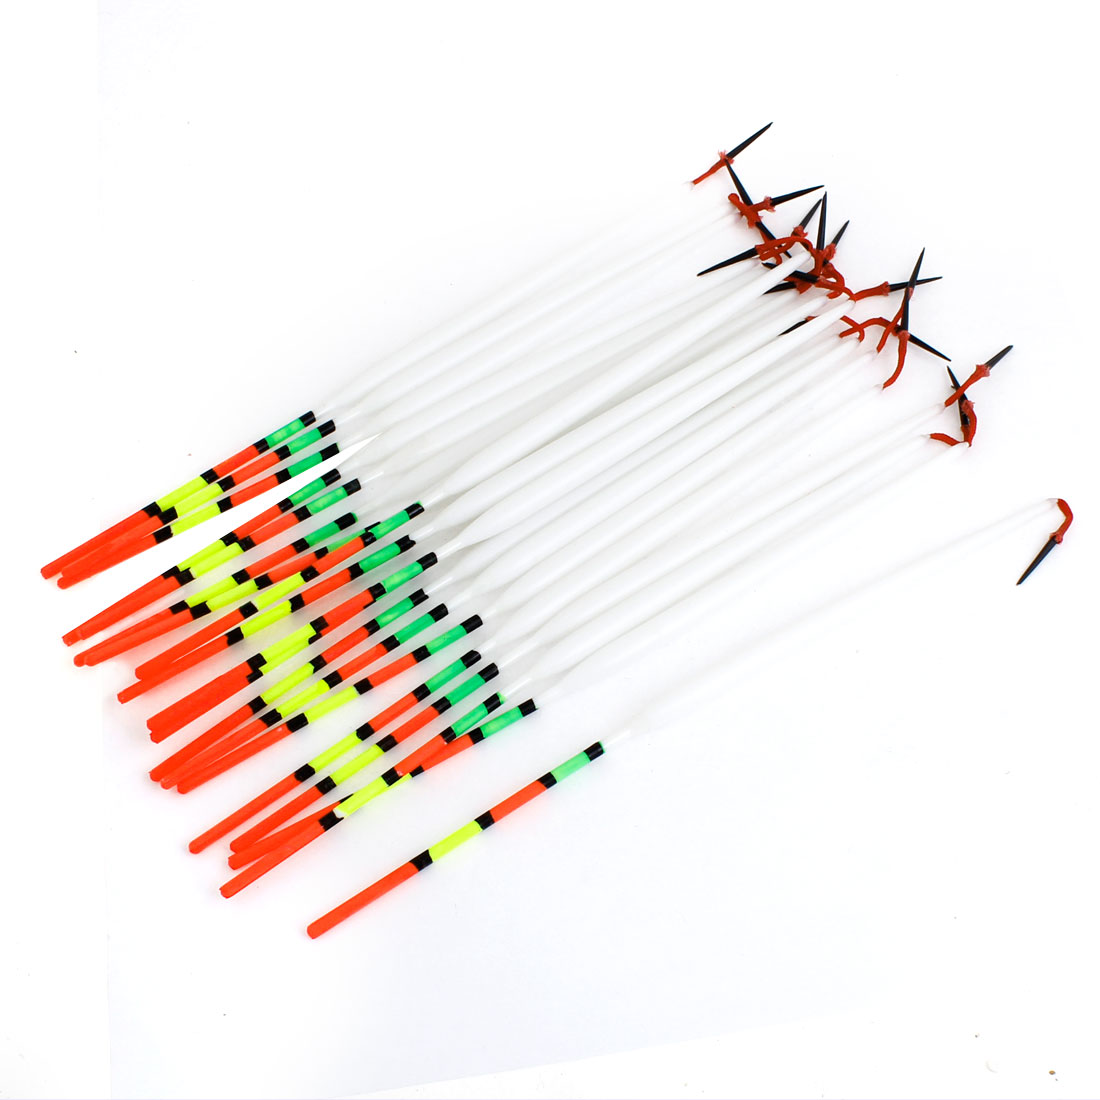 Click here to buy Unique Bargains 20 Pcs Drop Shape Fishing Floaters Bobbers 23.5cm Long.